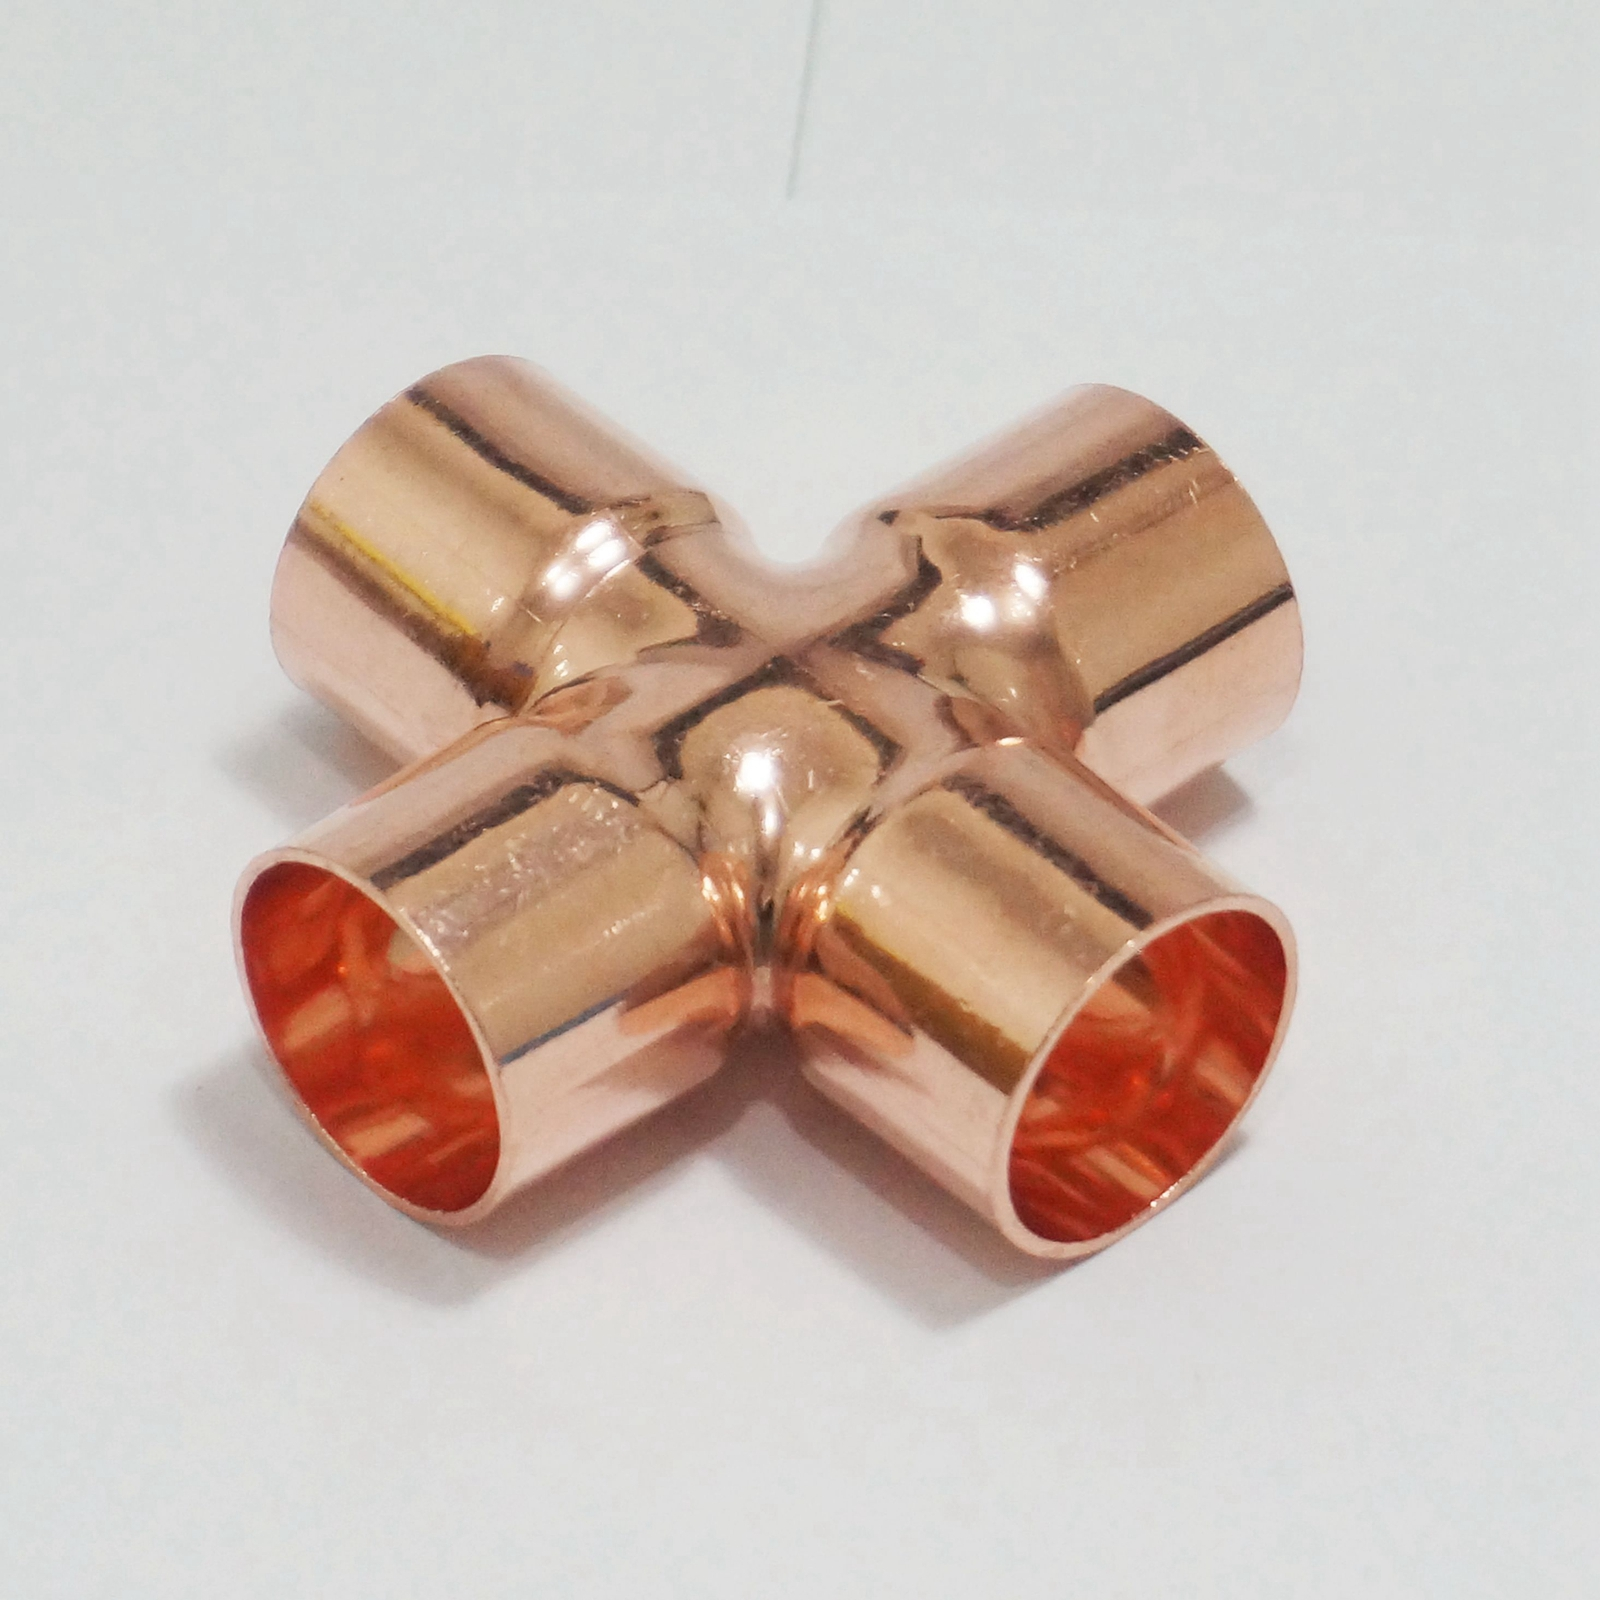 22x1mm copper end feed equal cross 4 way plumbing pipe for Copper water pipe fittings types